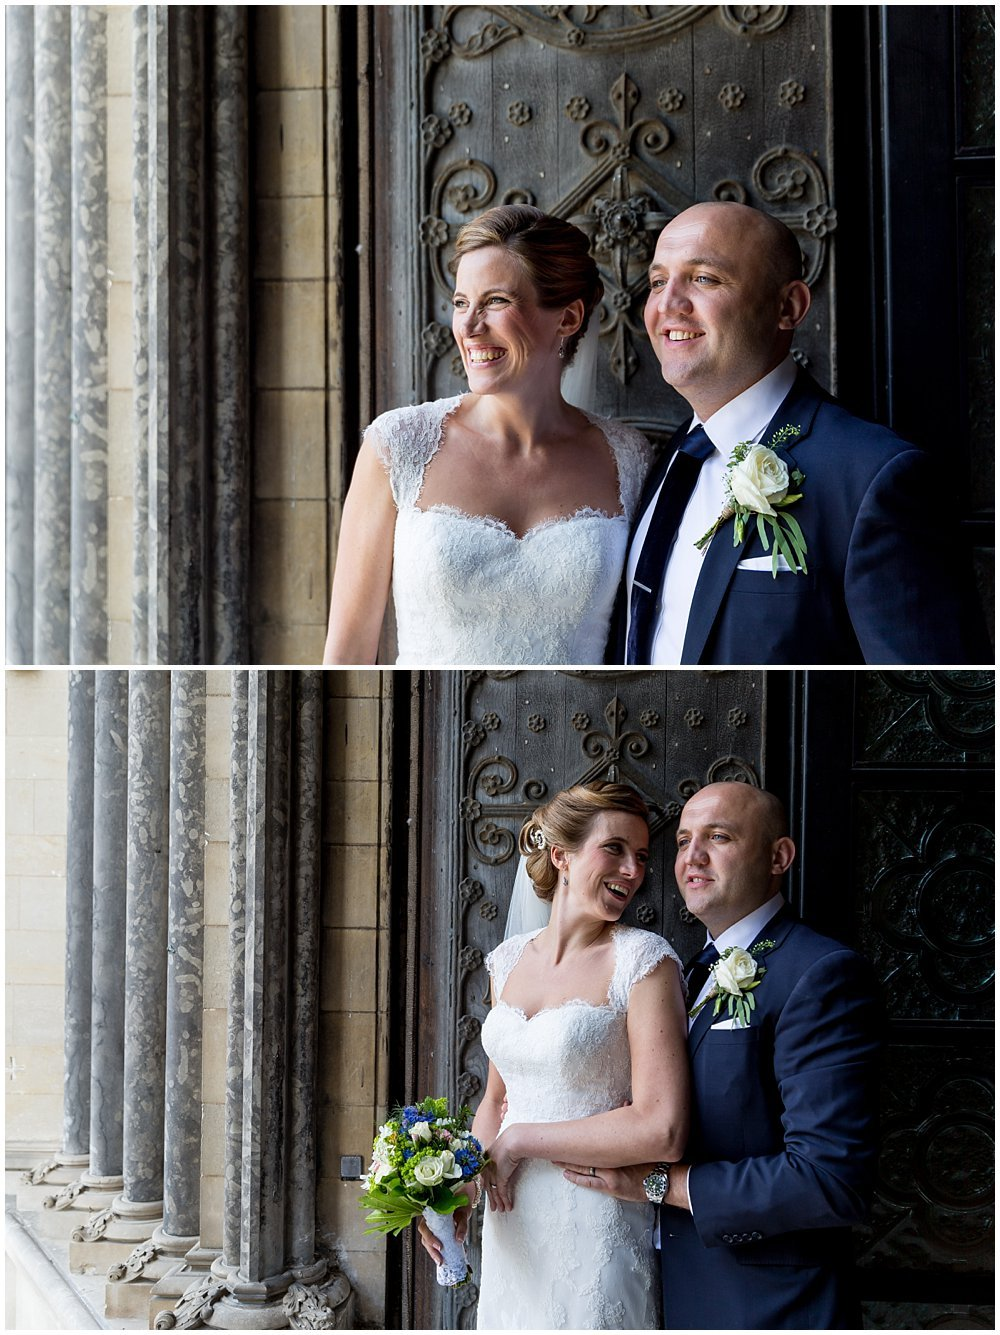 AMY AND DUNCAN NORWICH CATHEDRAL AND THE BOATHOUSE WEDDING - NORWICH AND NORFOLK WEDDING PHOTOGRAPHER 19